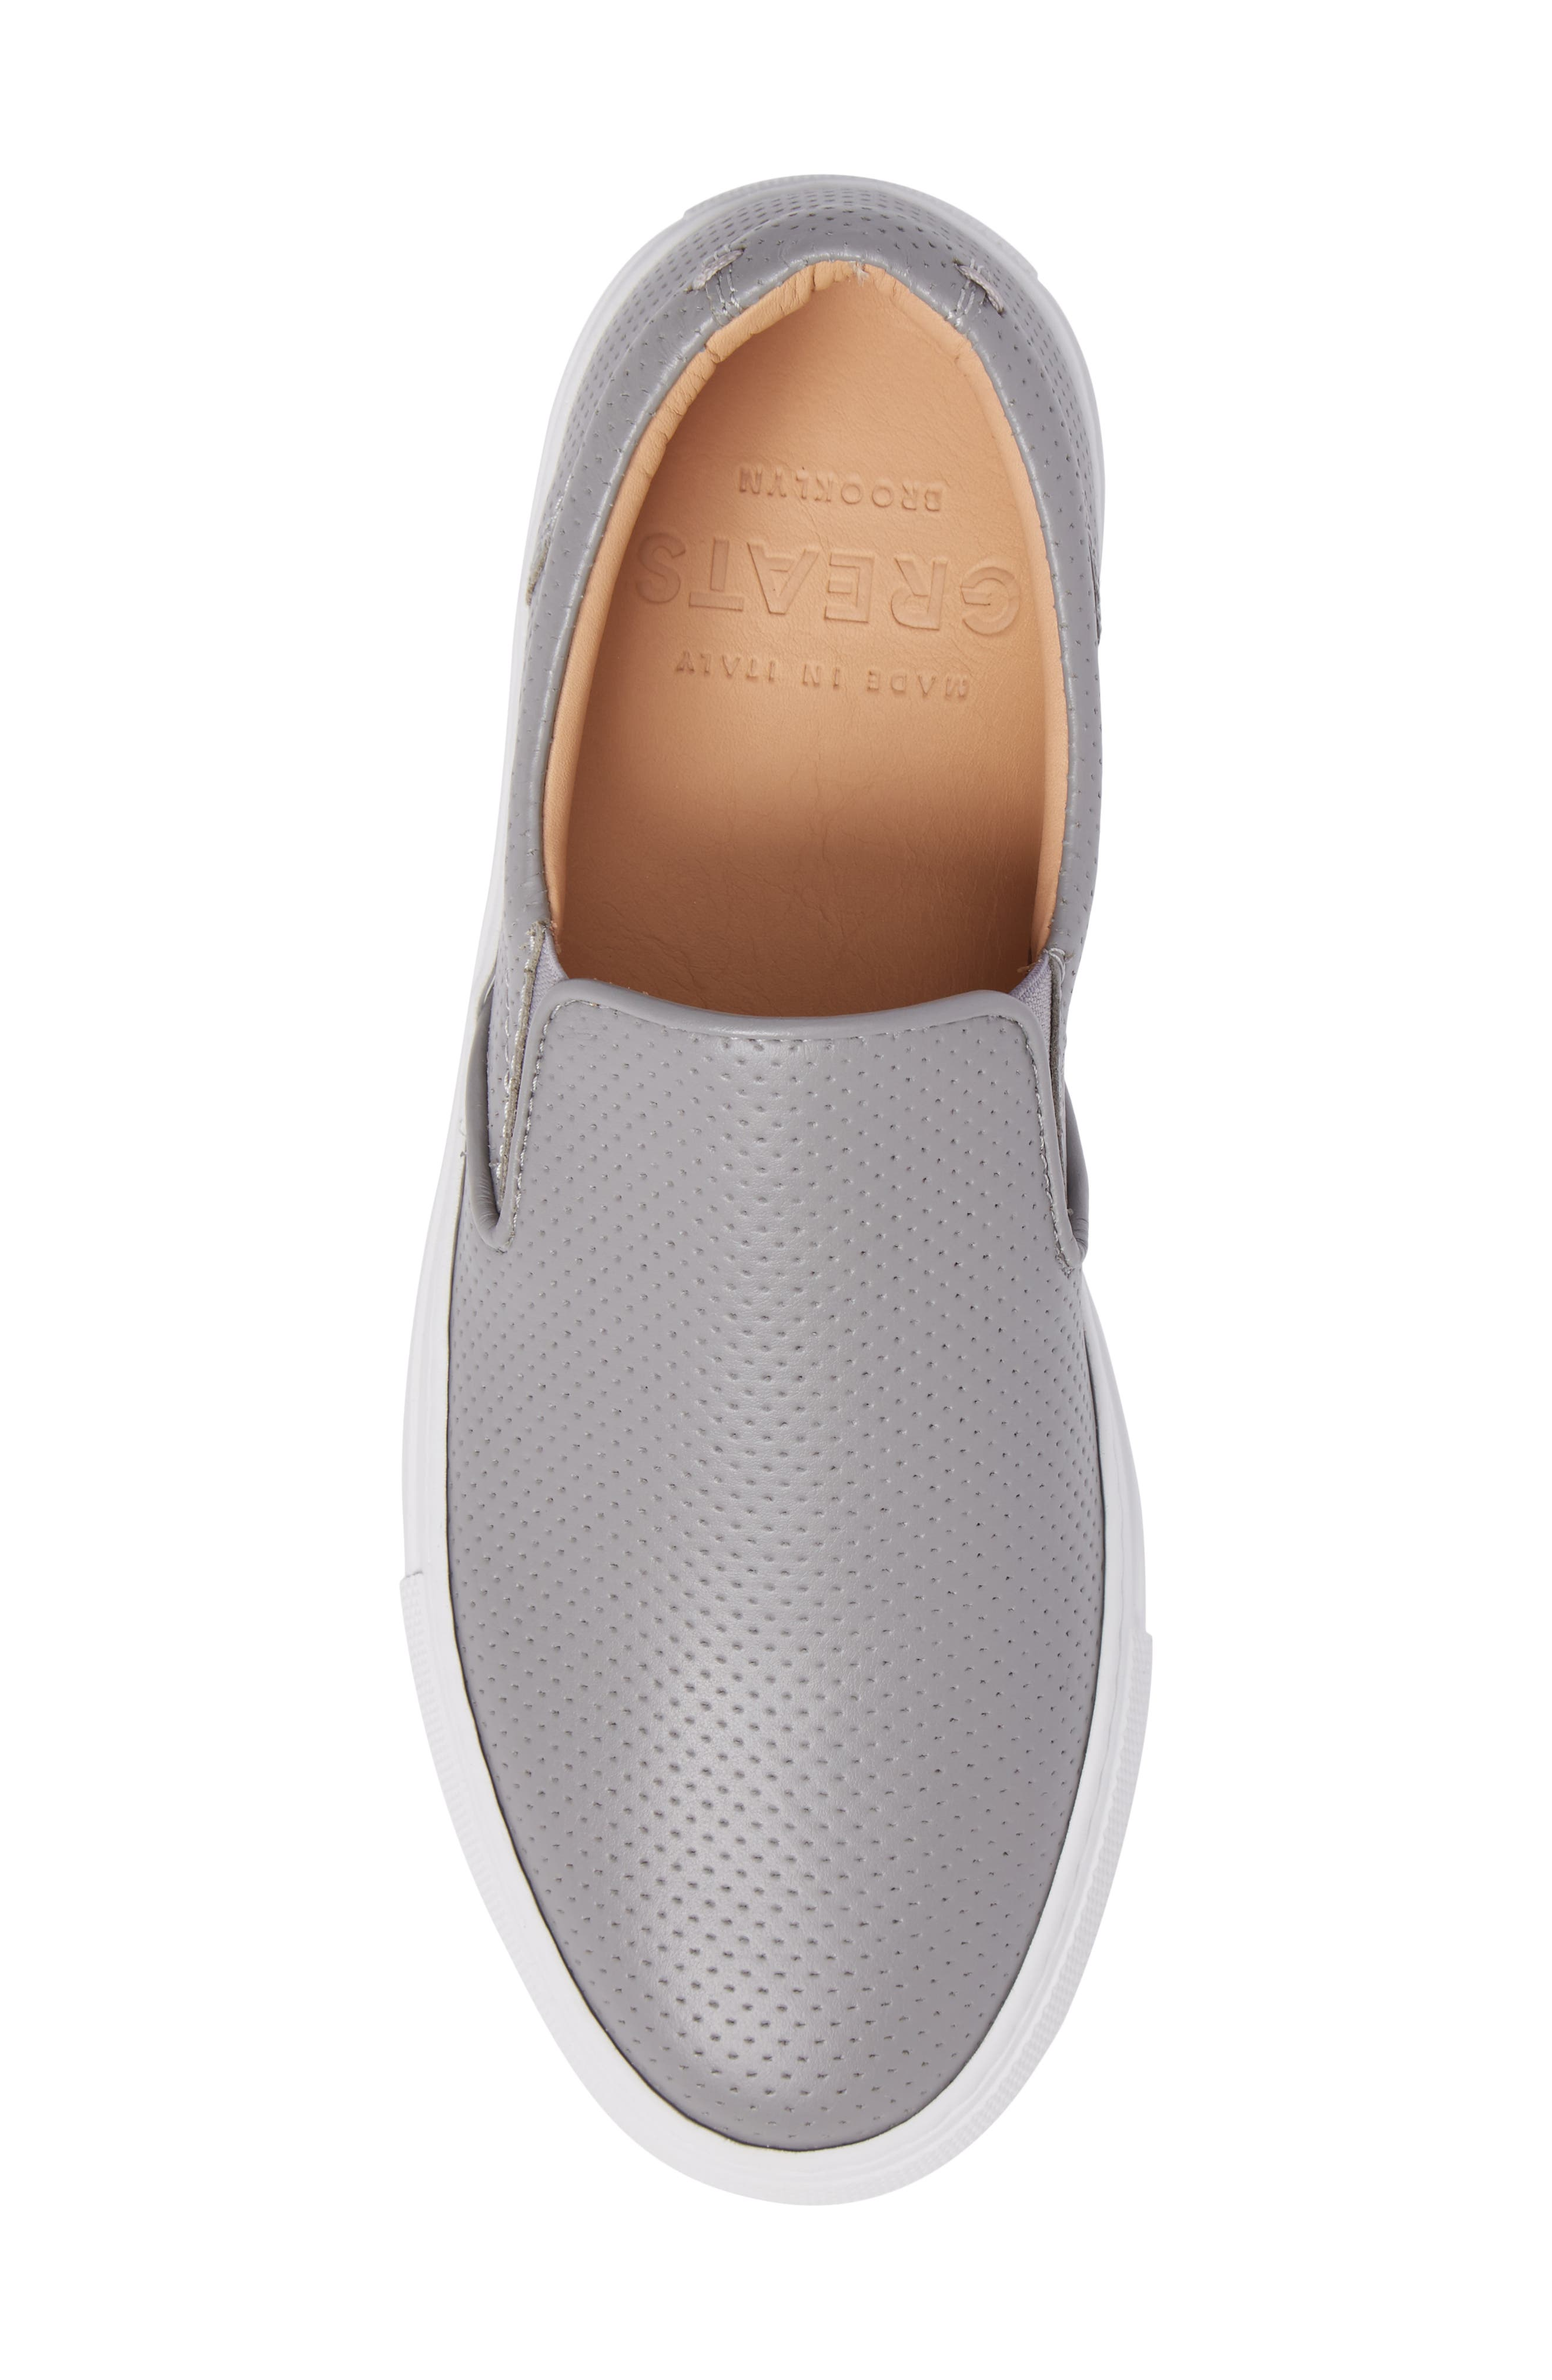 Wooster Slip-On Sneaker,                             Alternate thumbnail 5, color,                             GREY PERFORATED